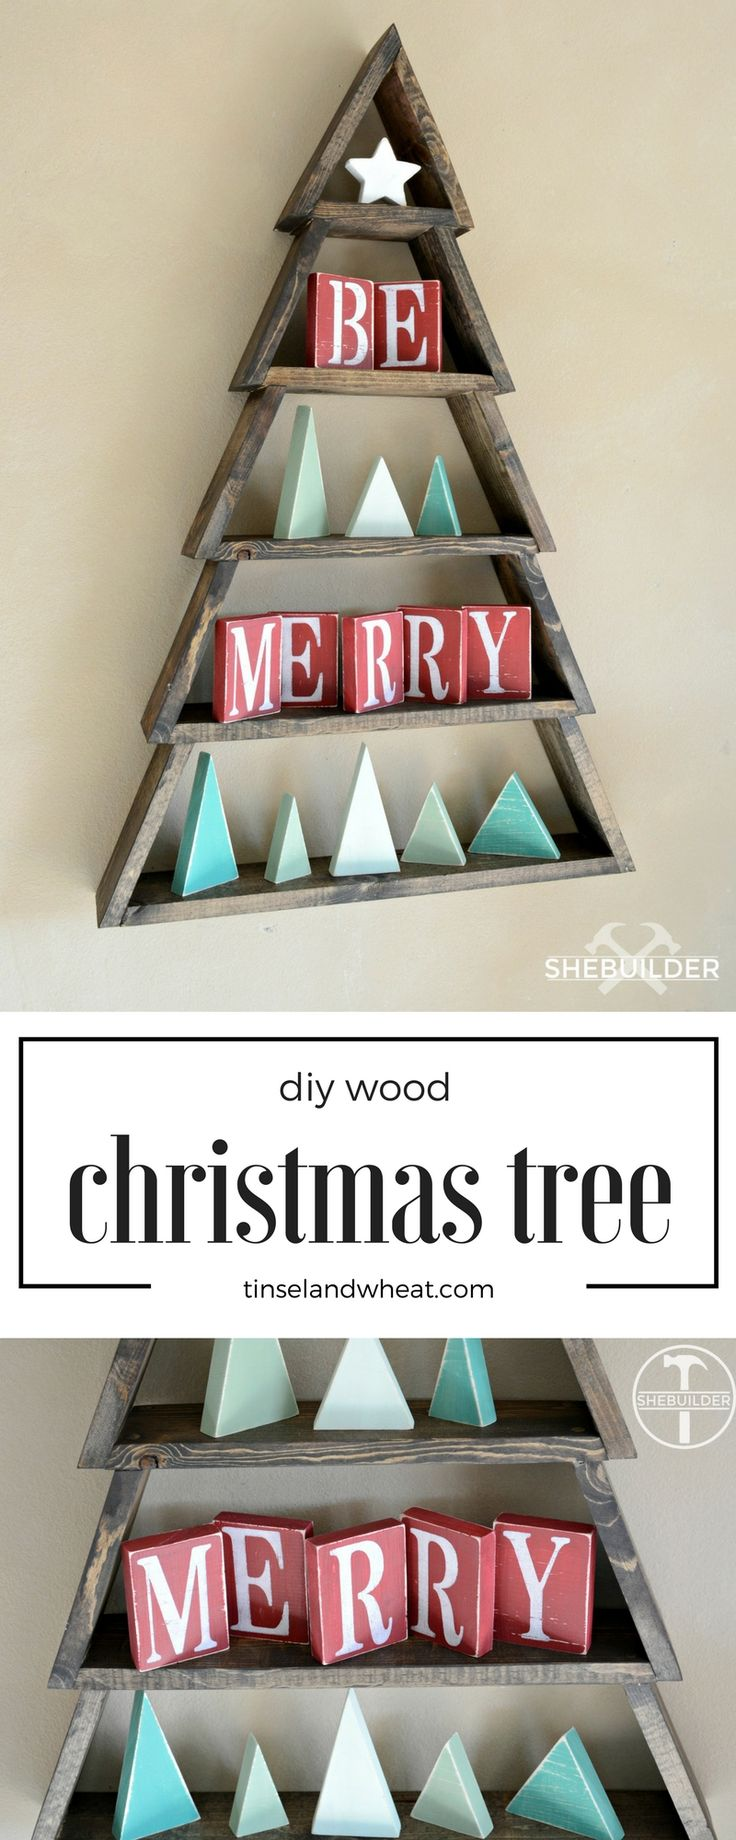 DIY Wood Christmas Tree!